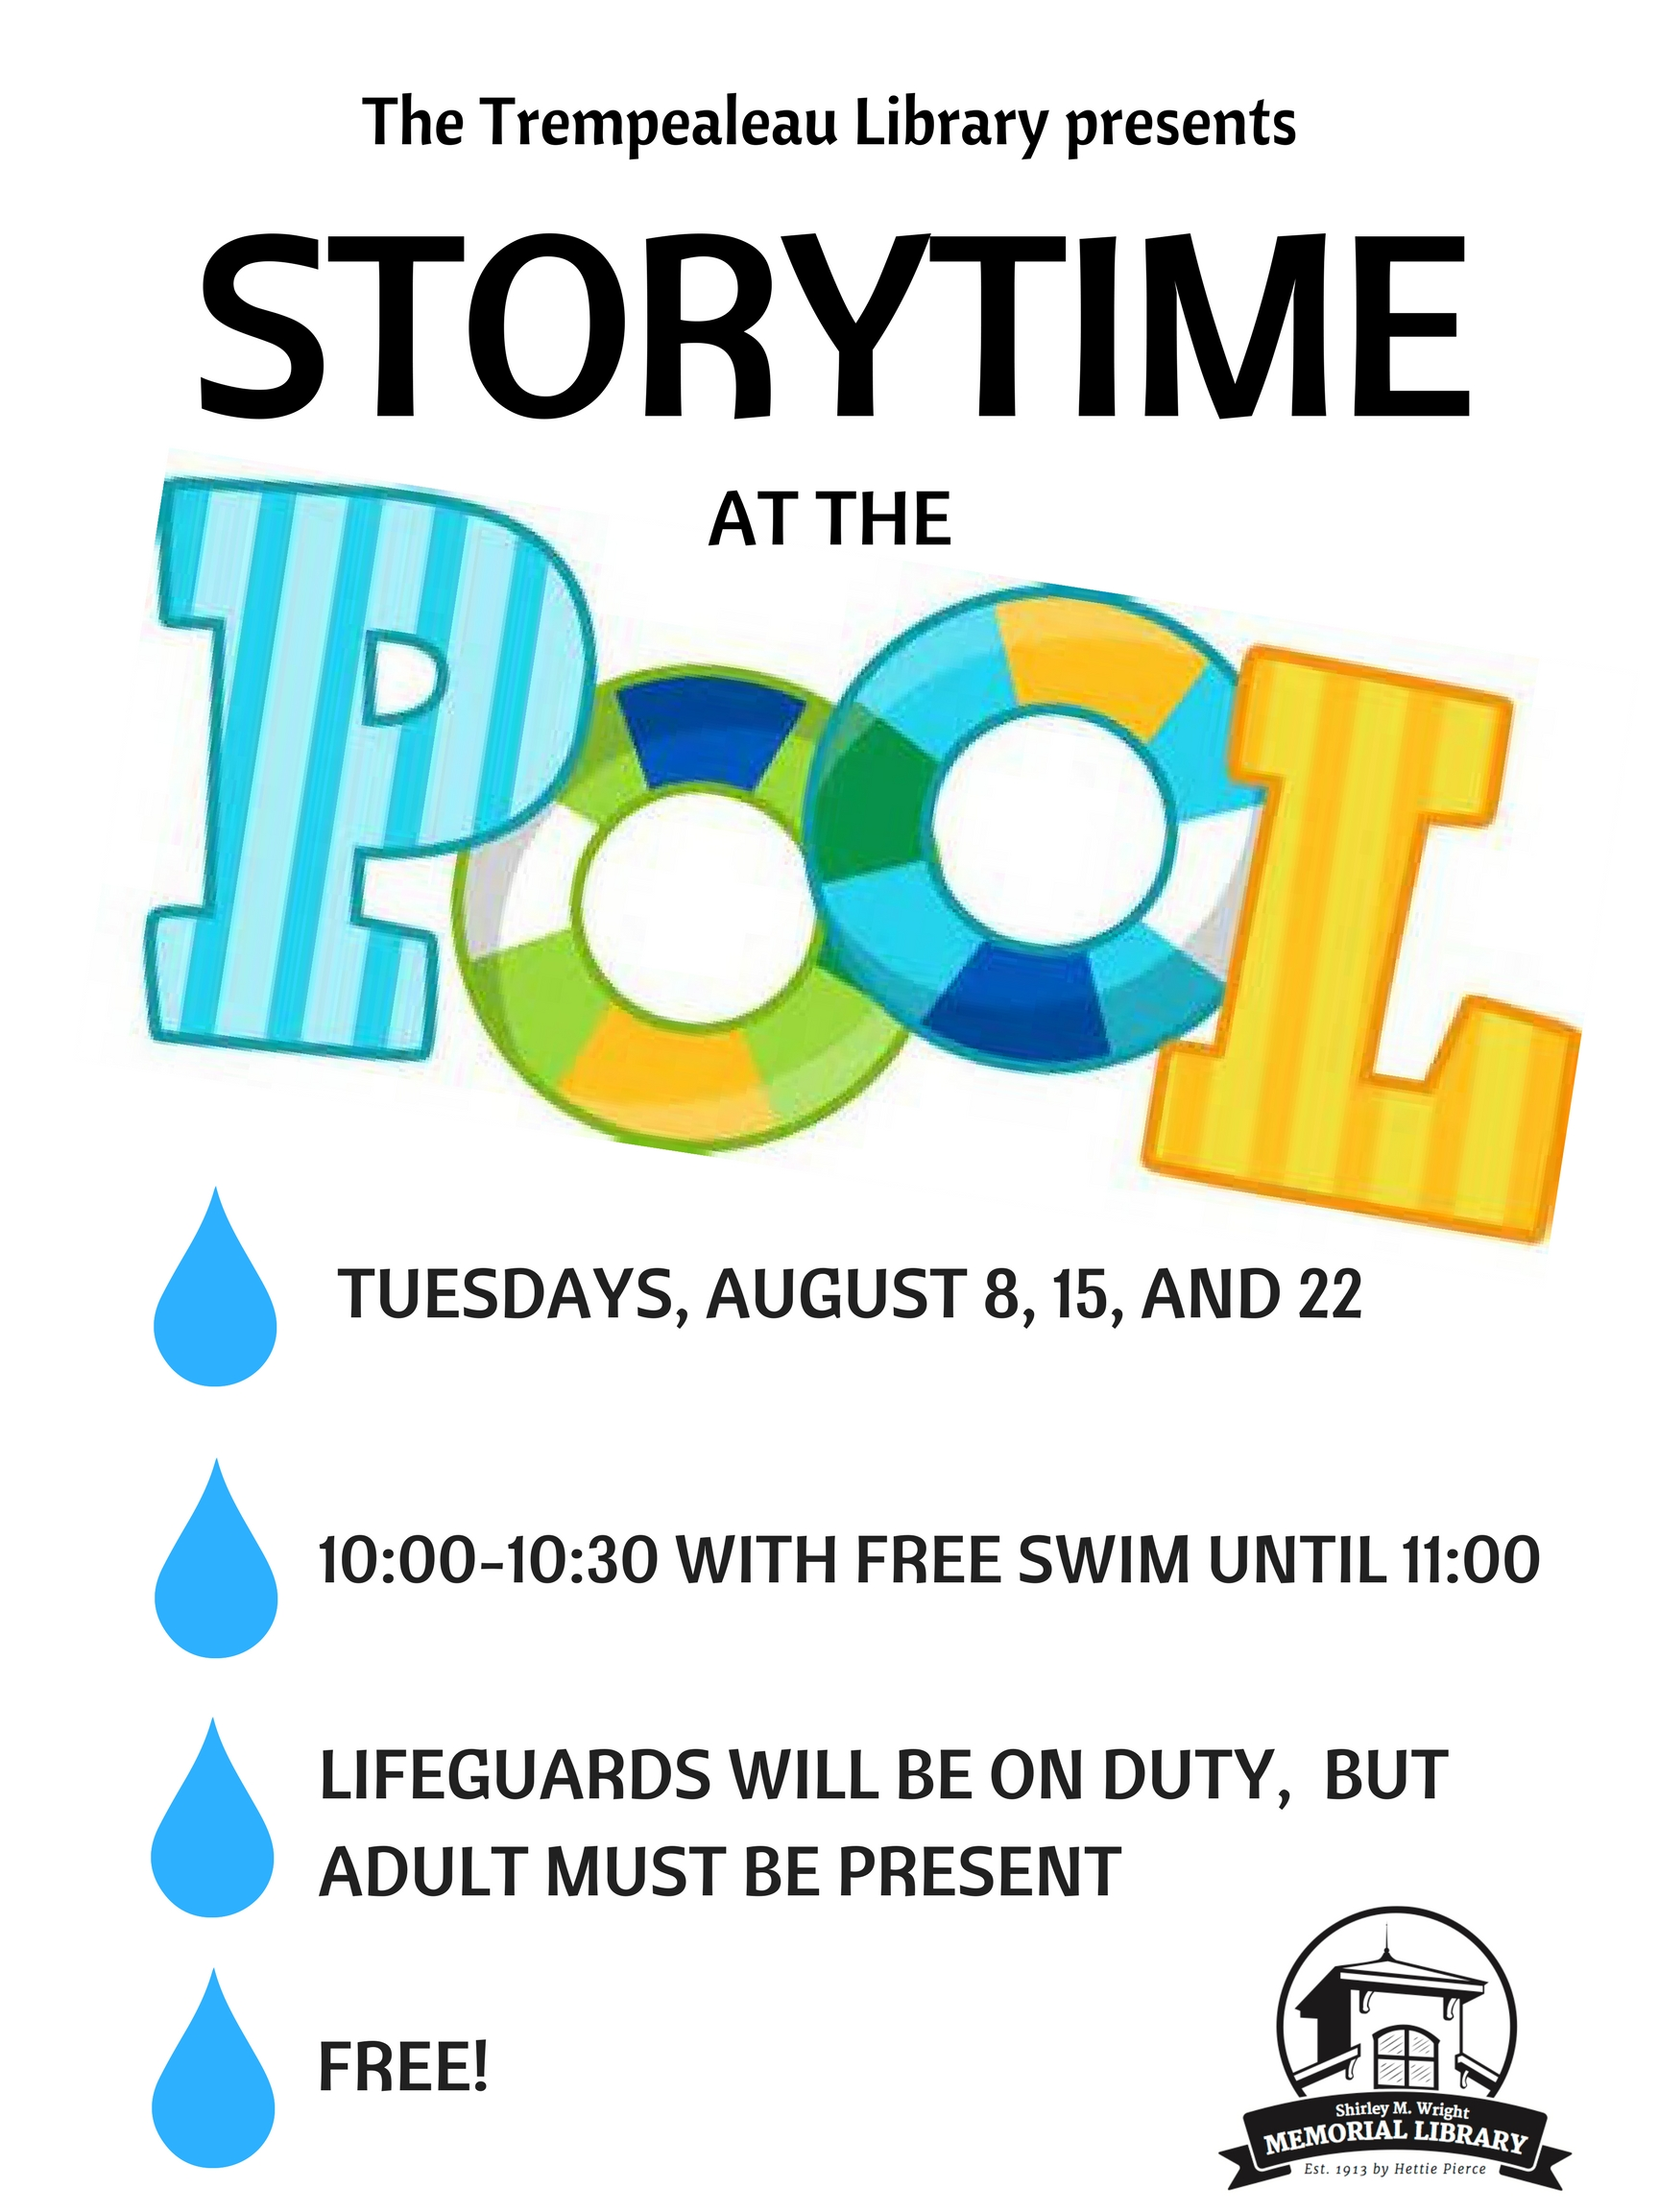 Storytime at the Pool!